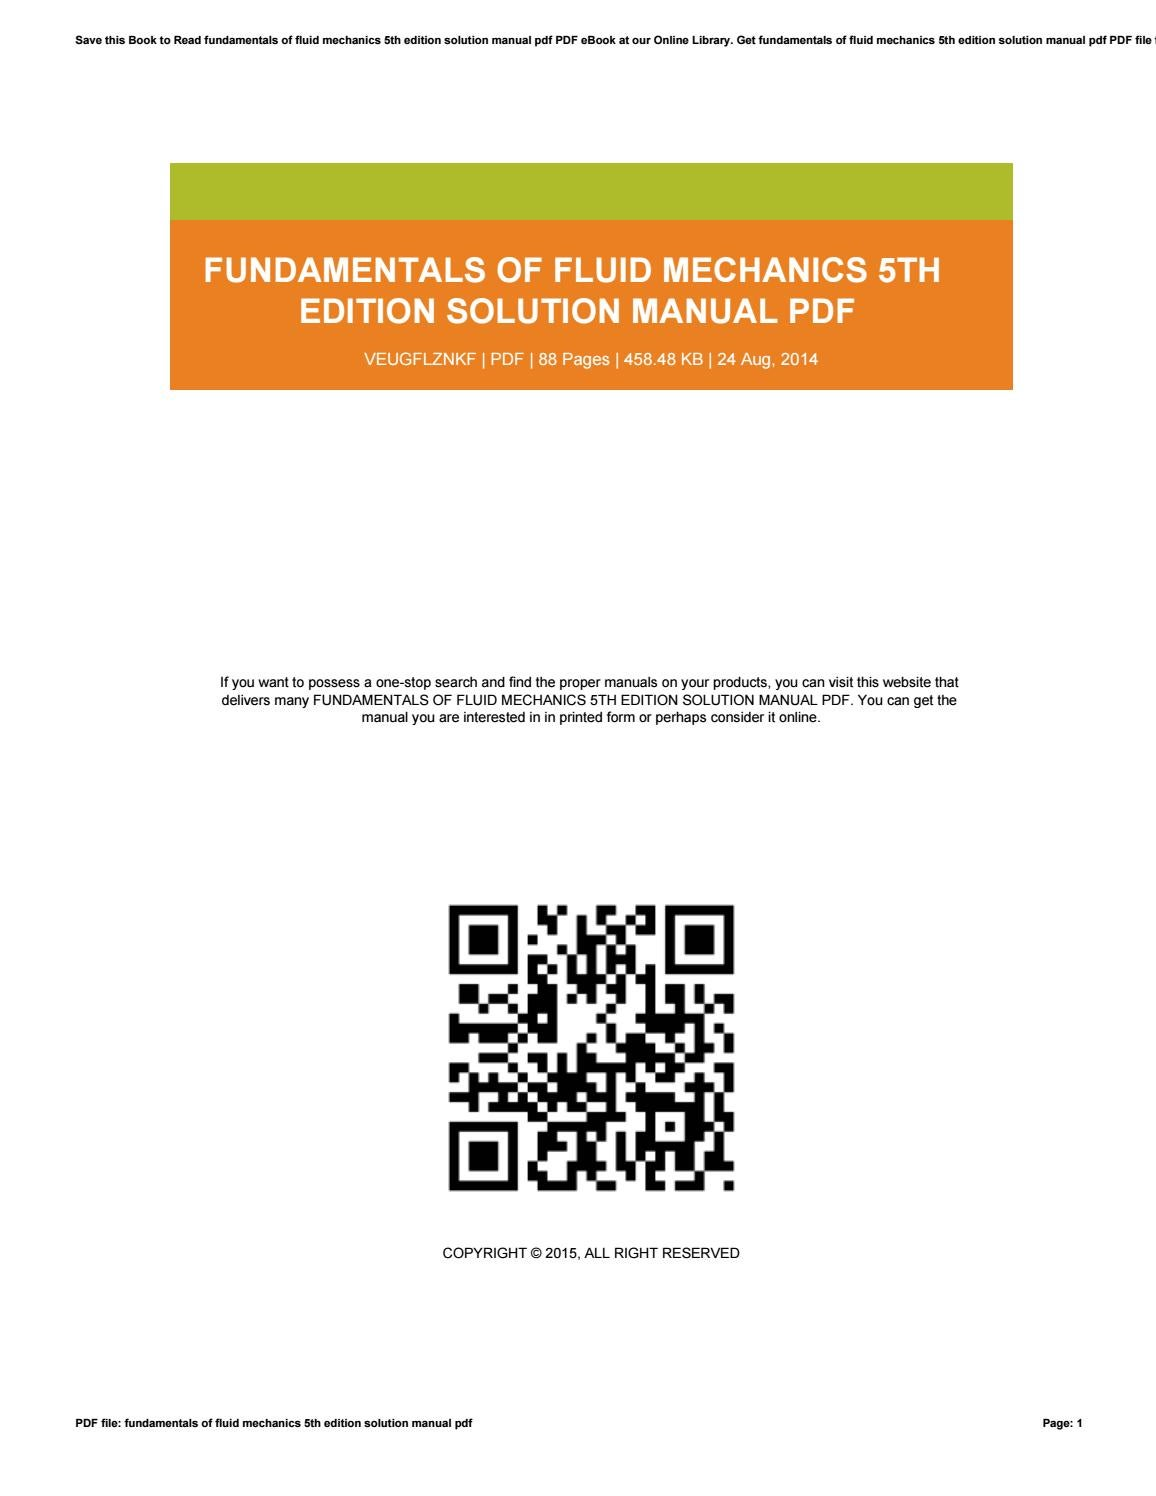 Fundamentals of fluid mechanics 5th edition solution manual pdf by  minex-coin66 - issuu